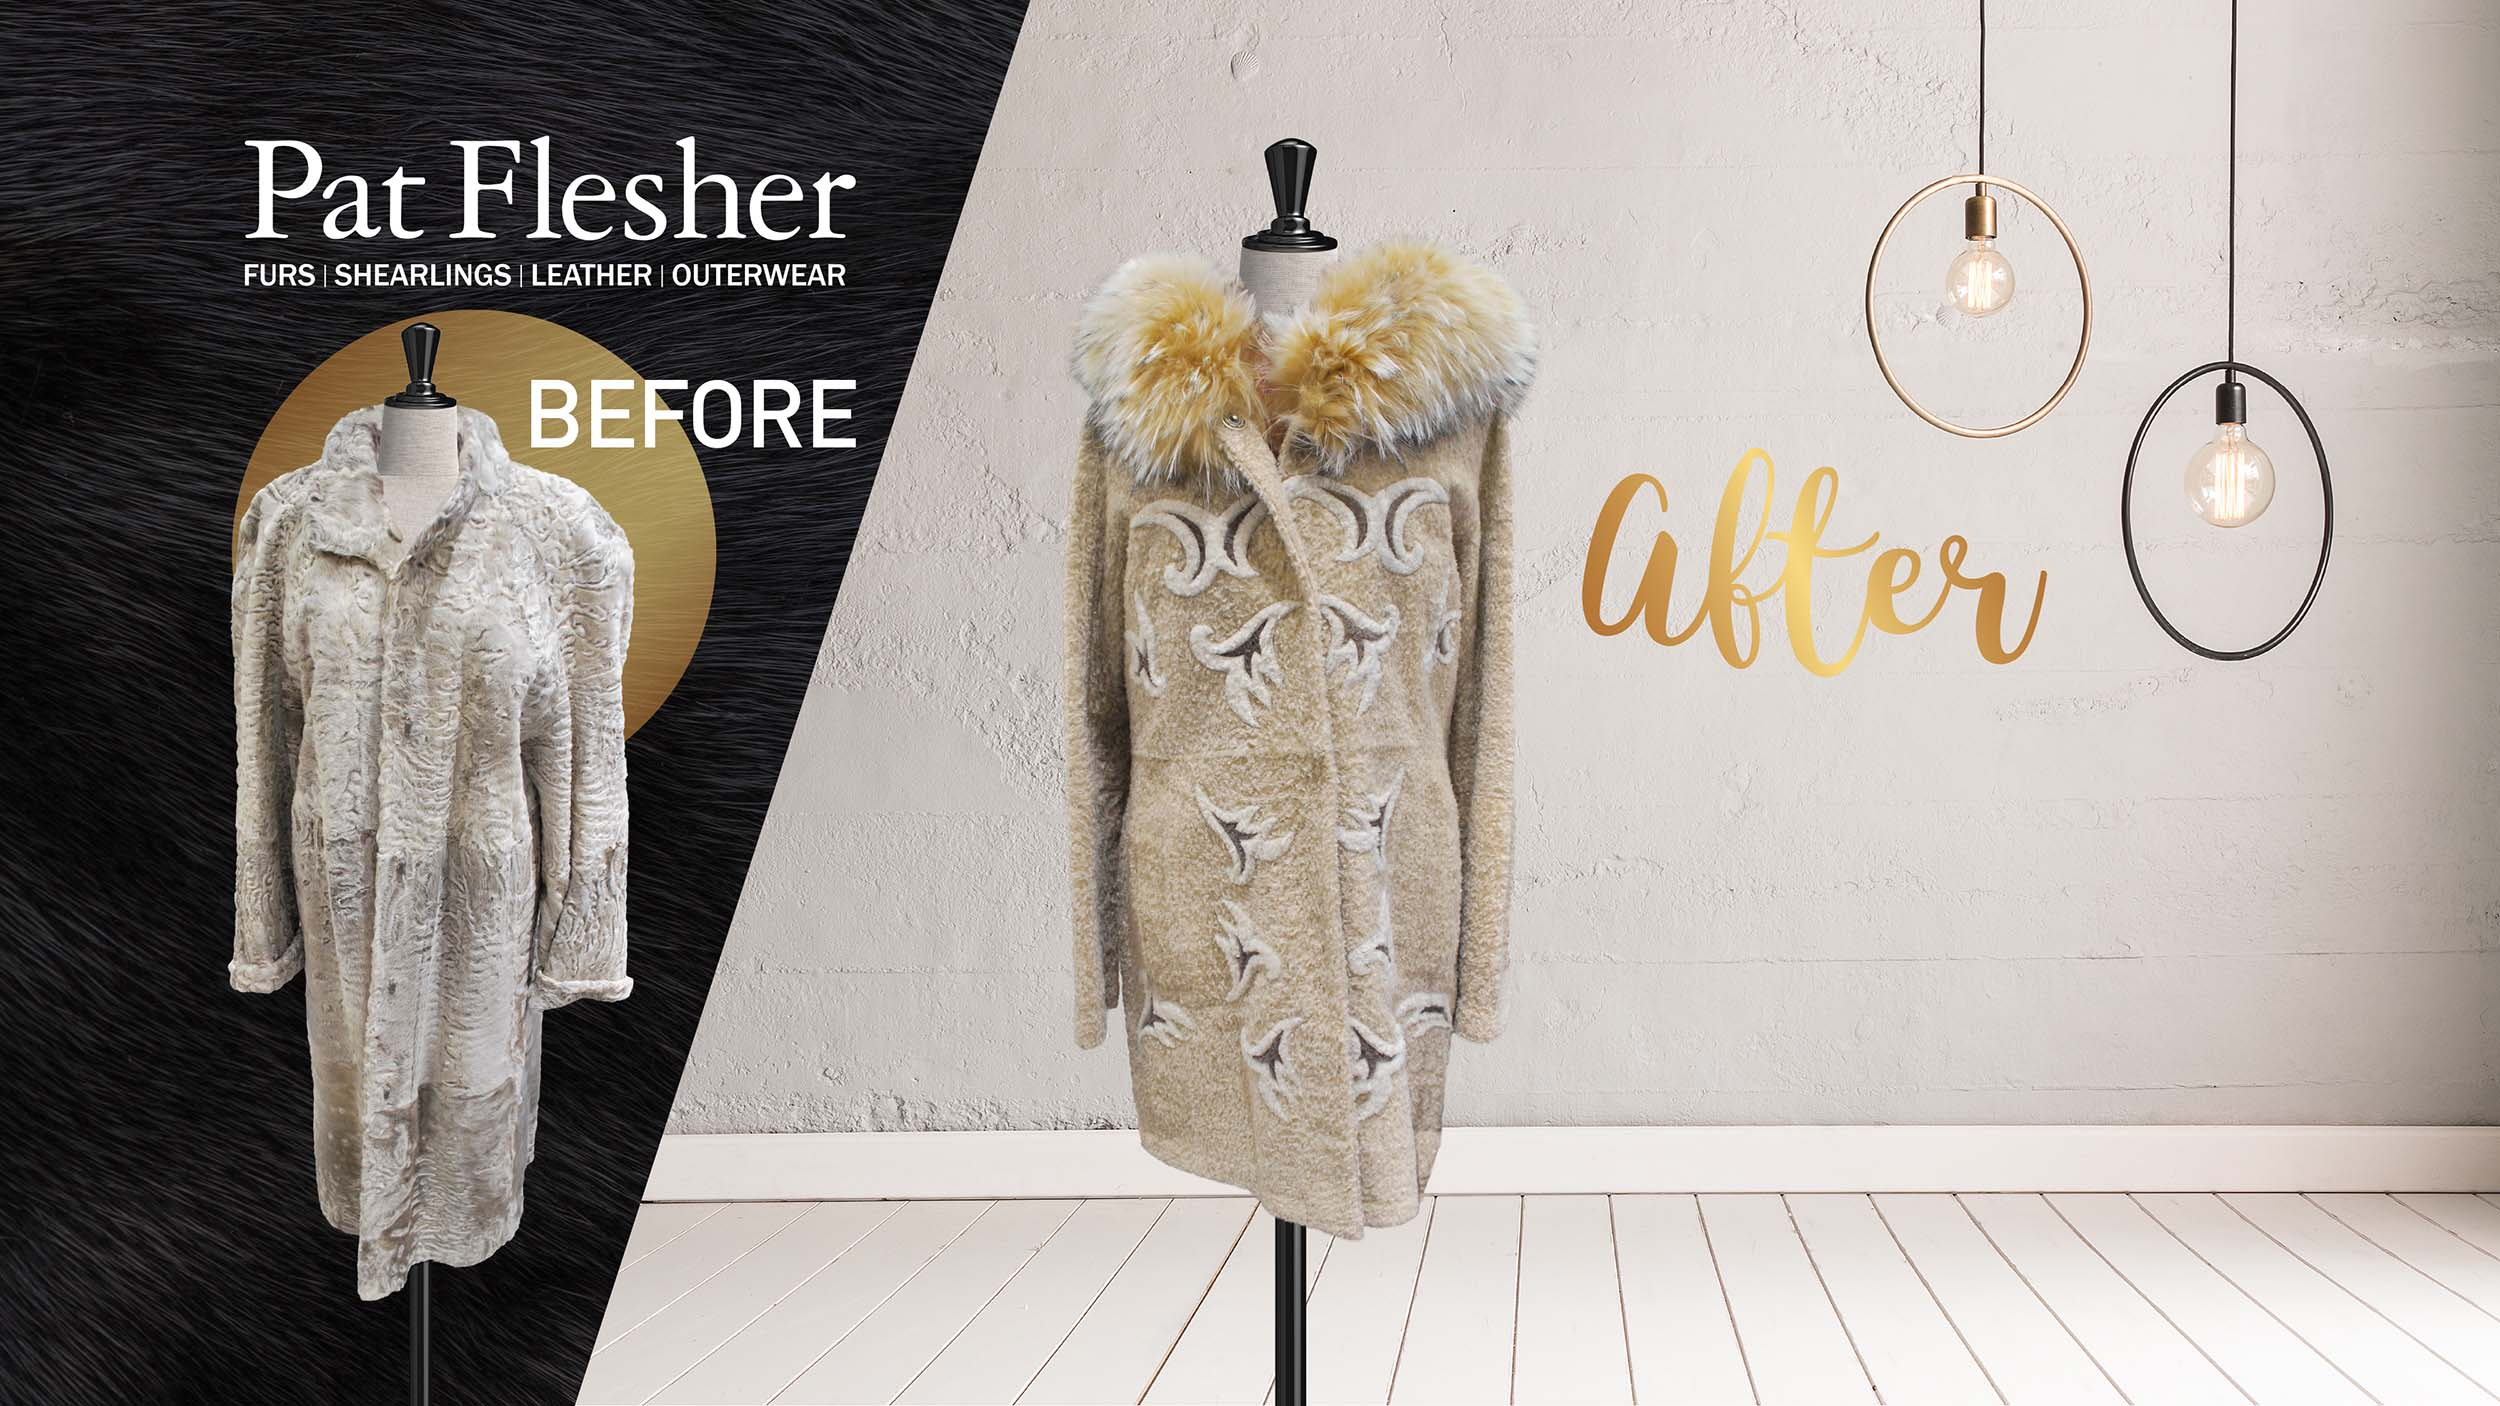 PatFlesher-furs-before-after-1.jpg